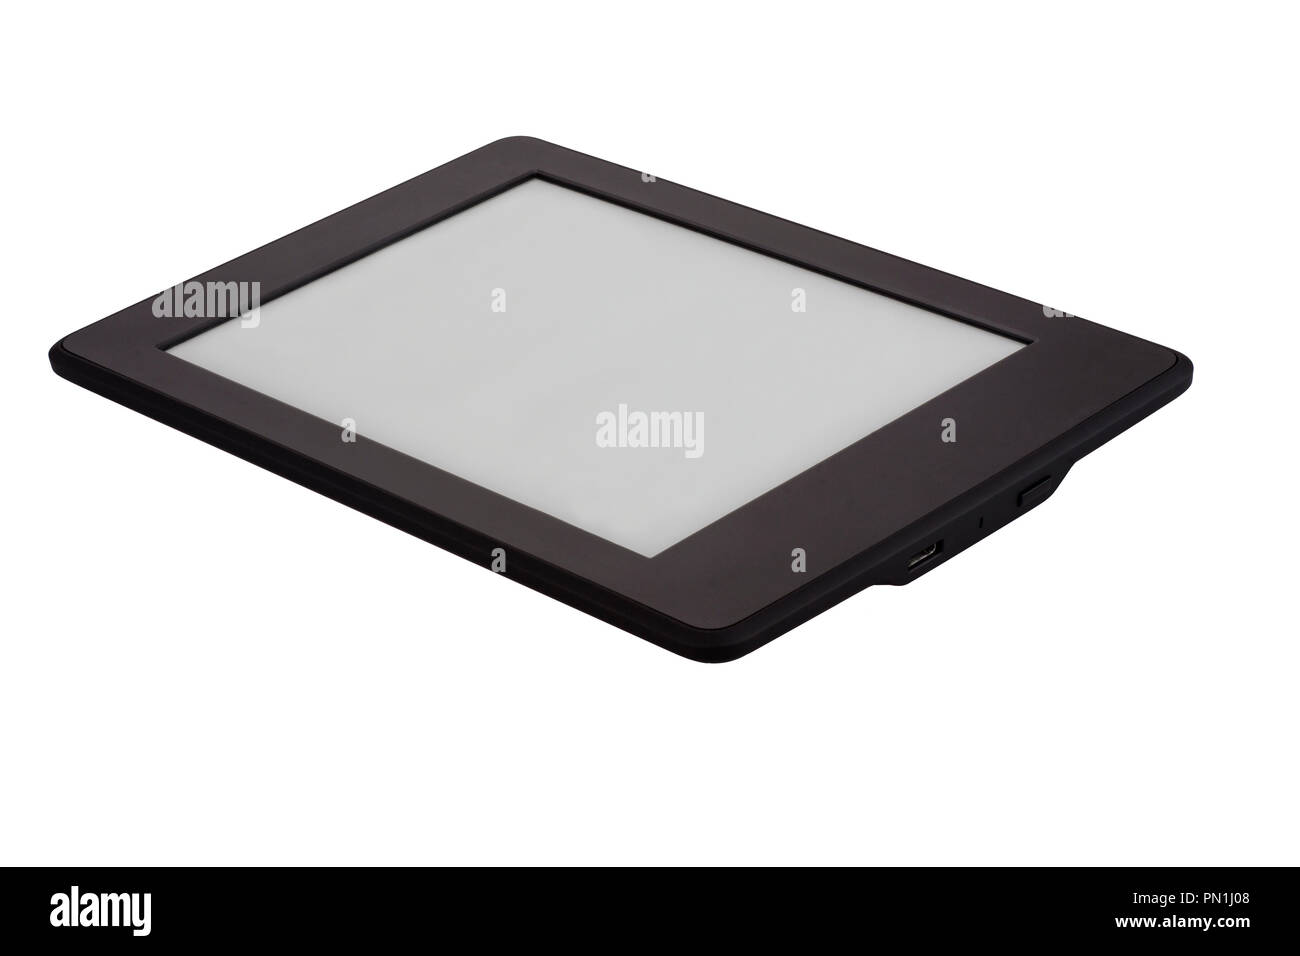 E-book device isolated on white background - Stock Image